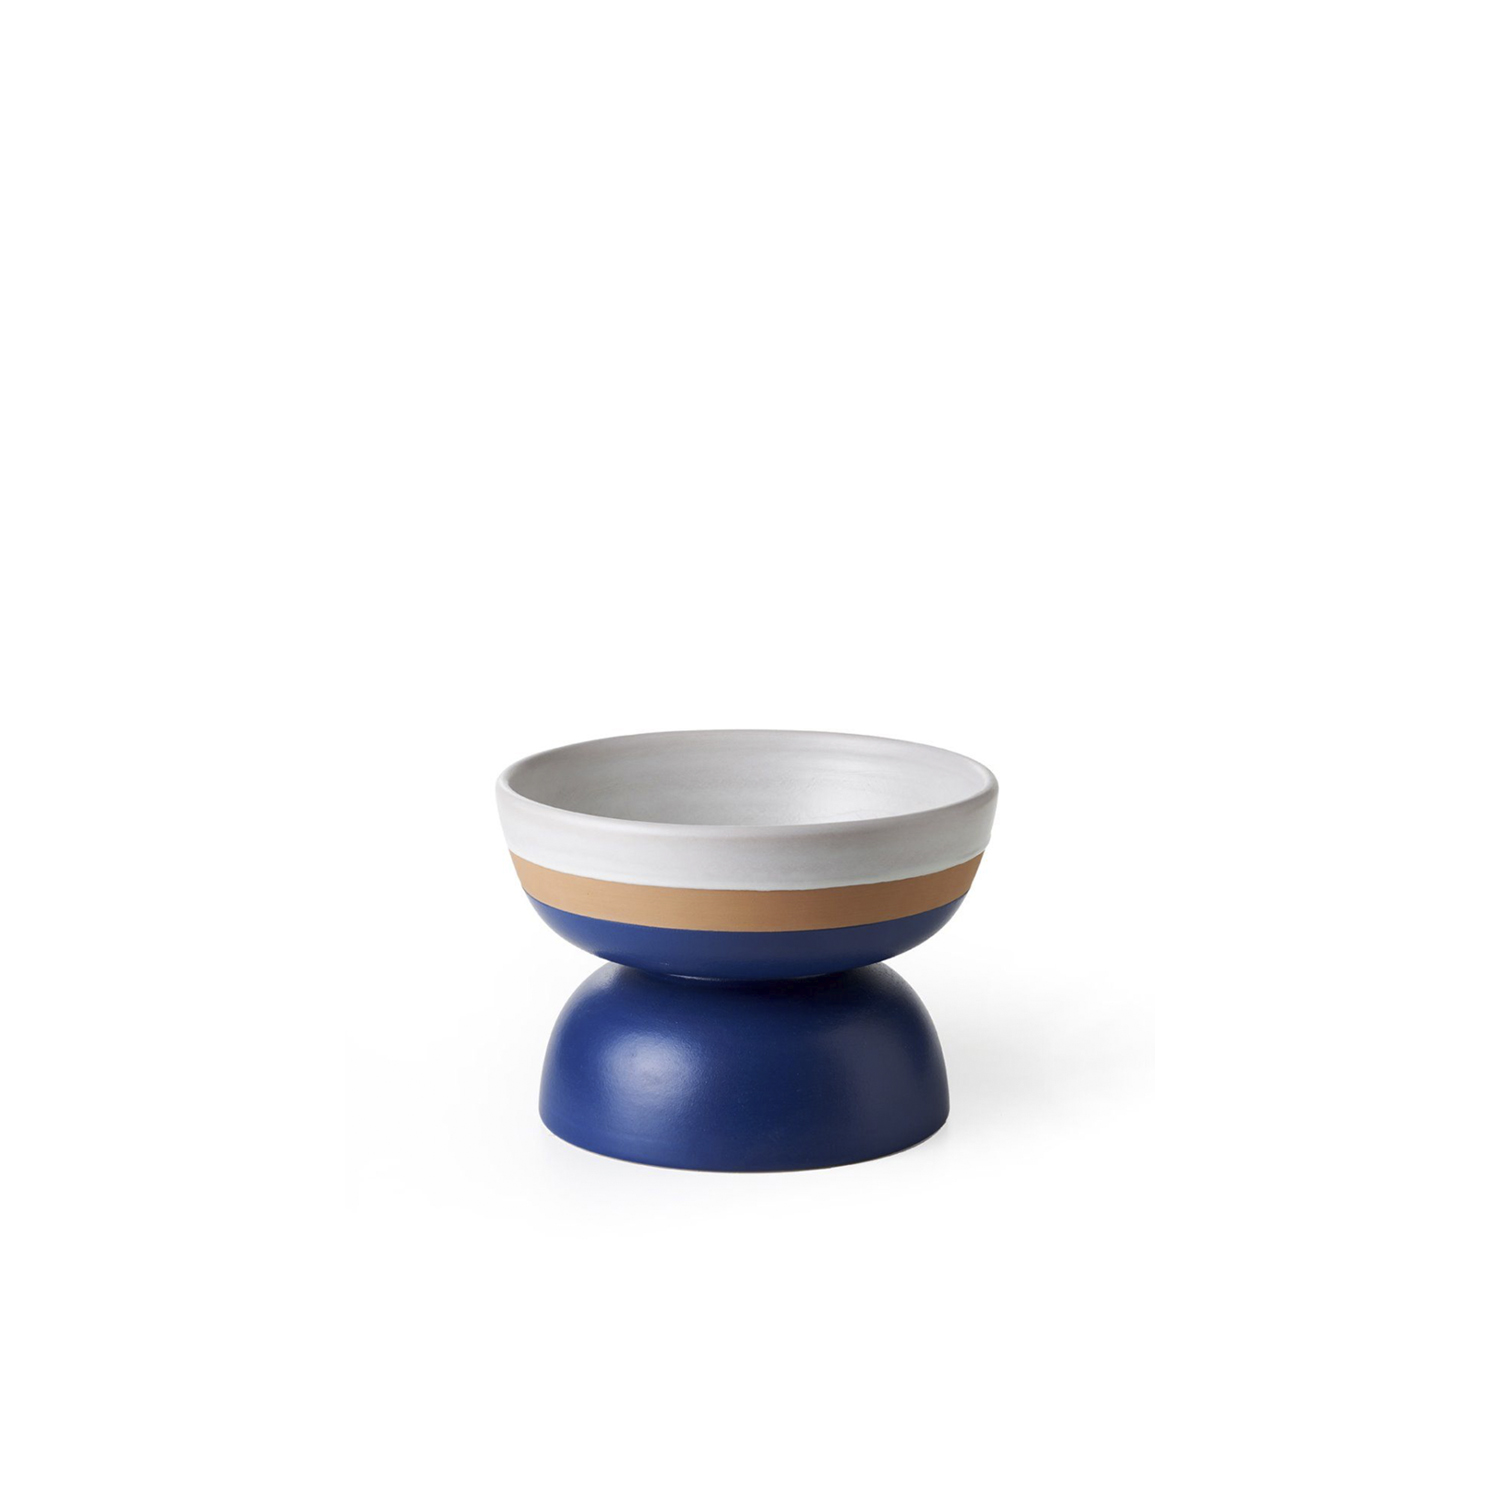 Two-Toned Matt White and Blue Bowl - Centre piece. Hand-turned in red clay. Two-tone matt white and blue glaze. | Matter of Stuff